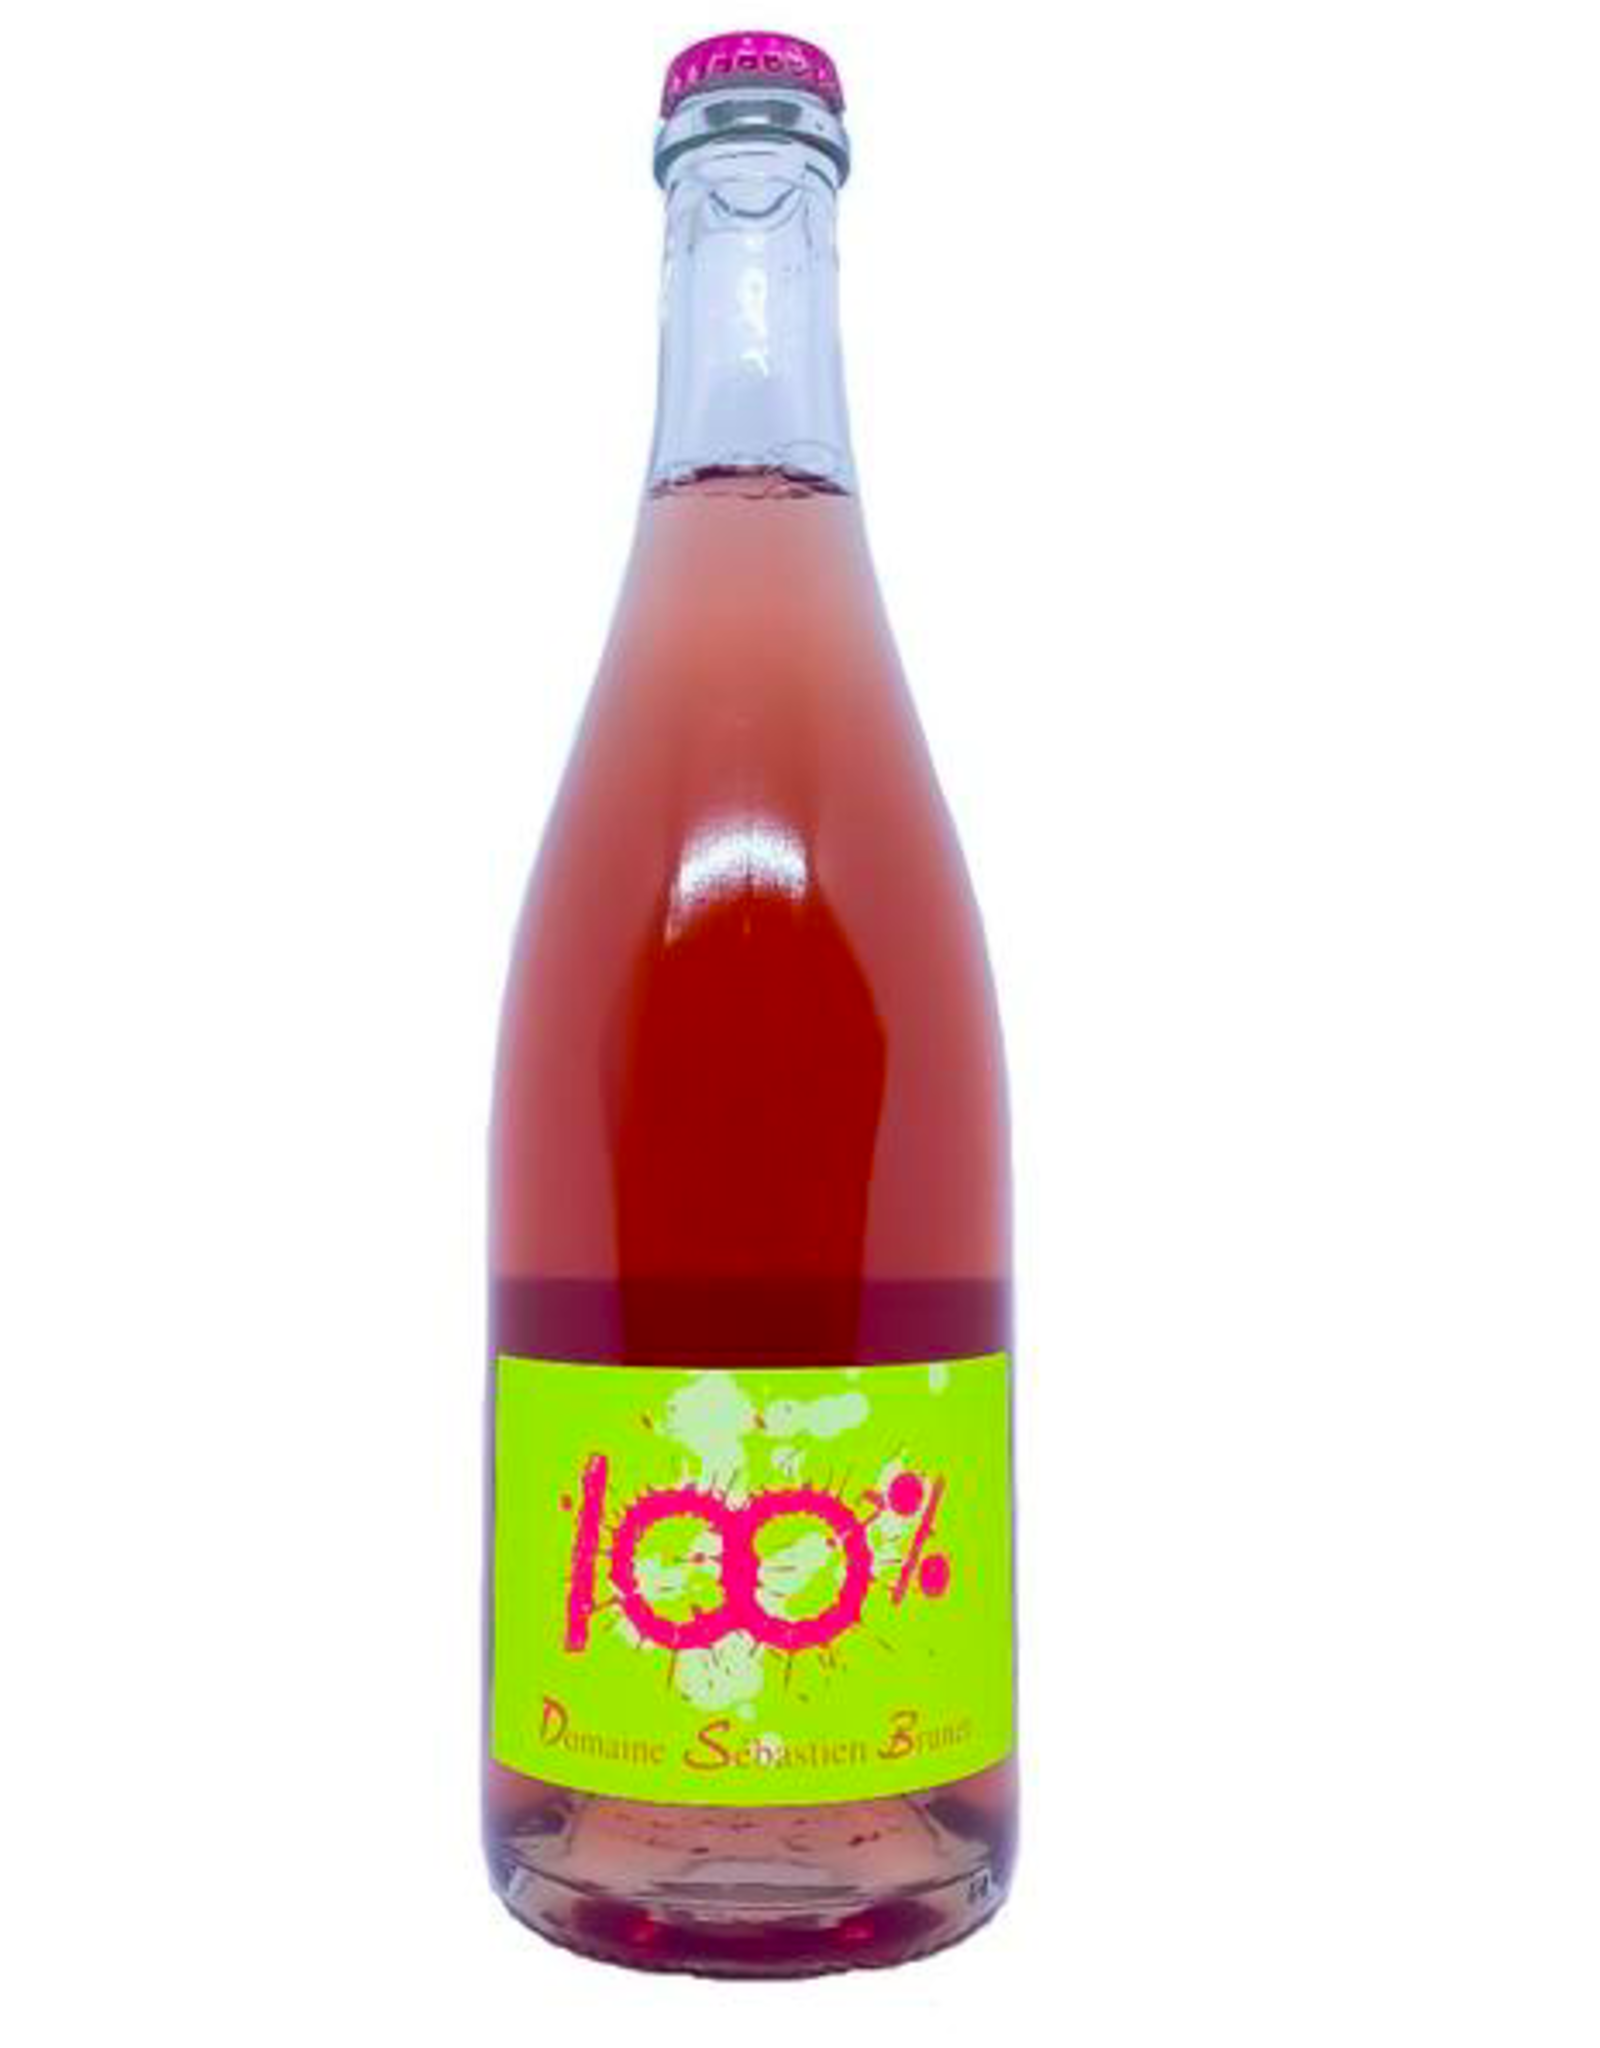 New Item Sébastien Brunet 100% Rose Pet-Nat 'Vin Mousseaux' NV